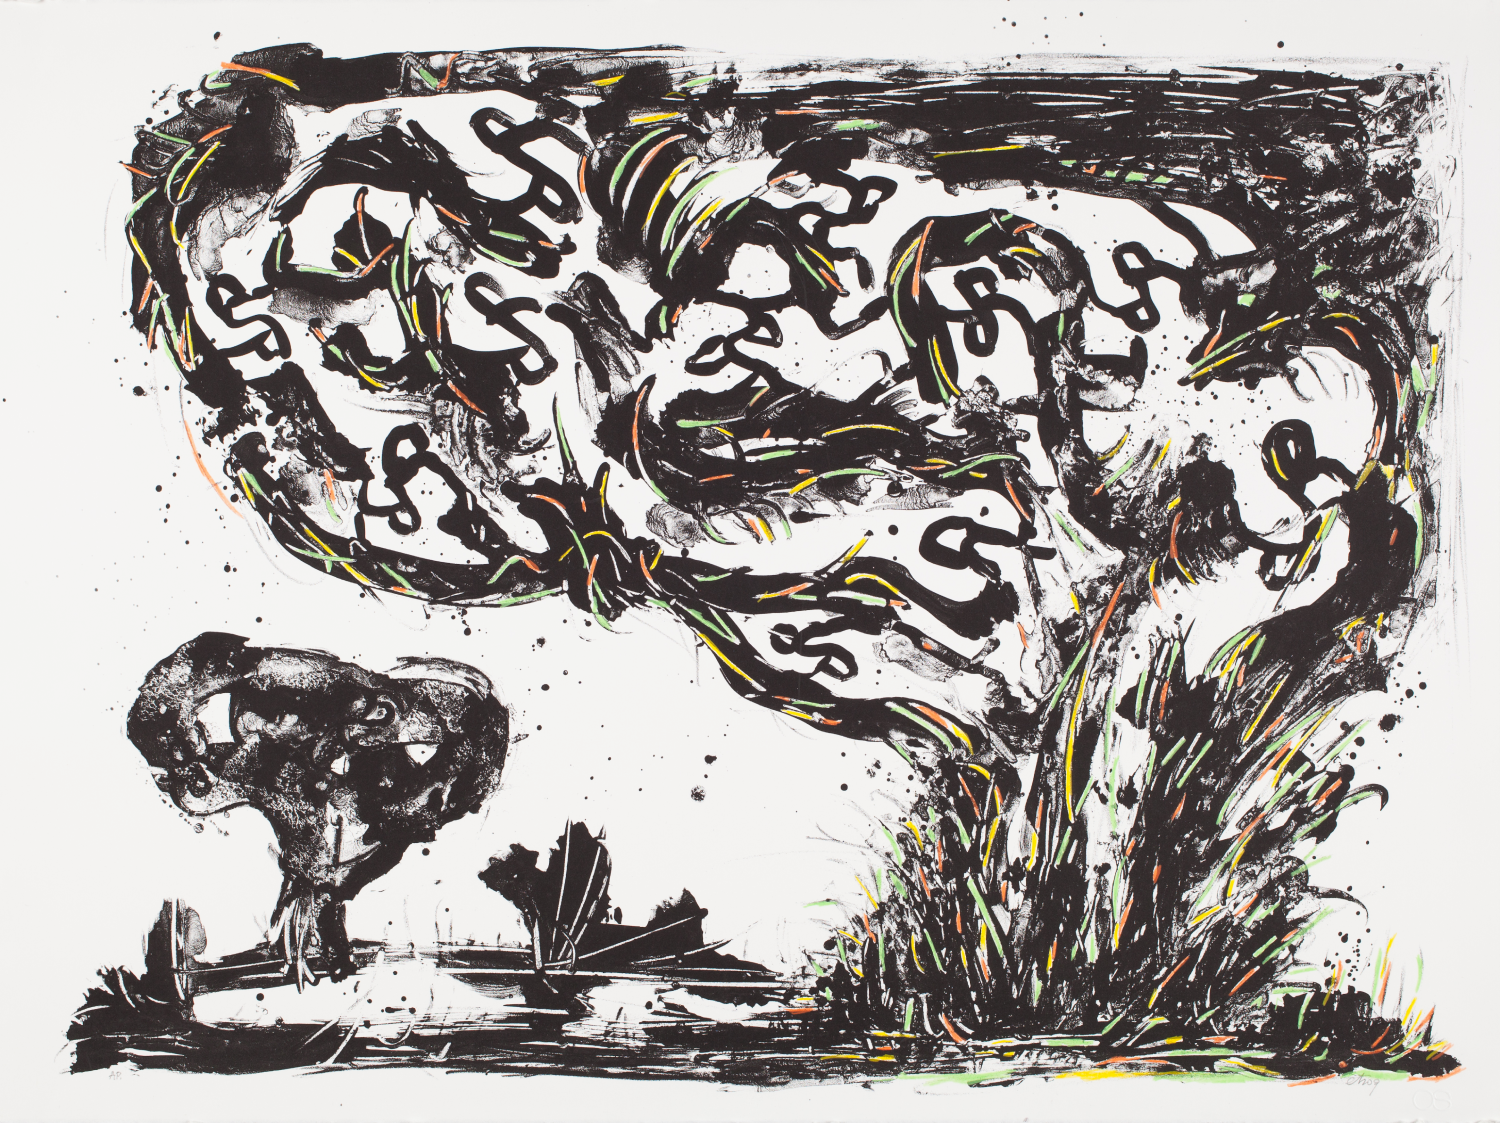 Sorel Etrog, Trees, 1969-97, hand coloured serigraph on paper. Collection of the MacLaren Art Centre. Gift of the artist, 1998. Photo: Andre Beneteau